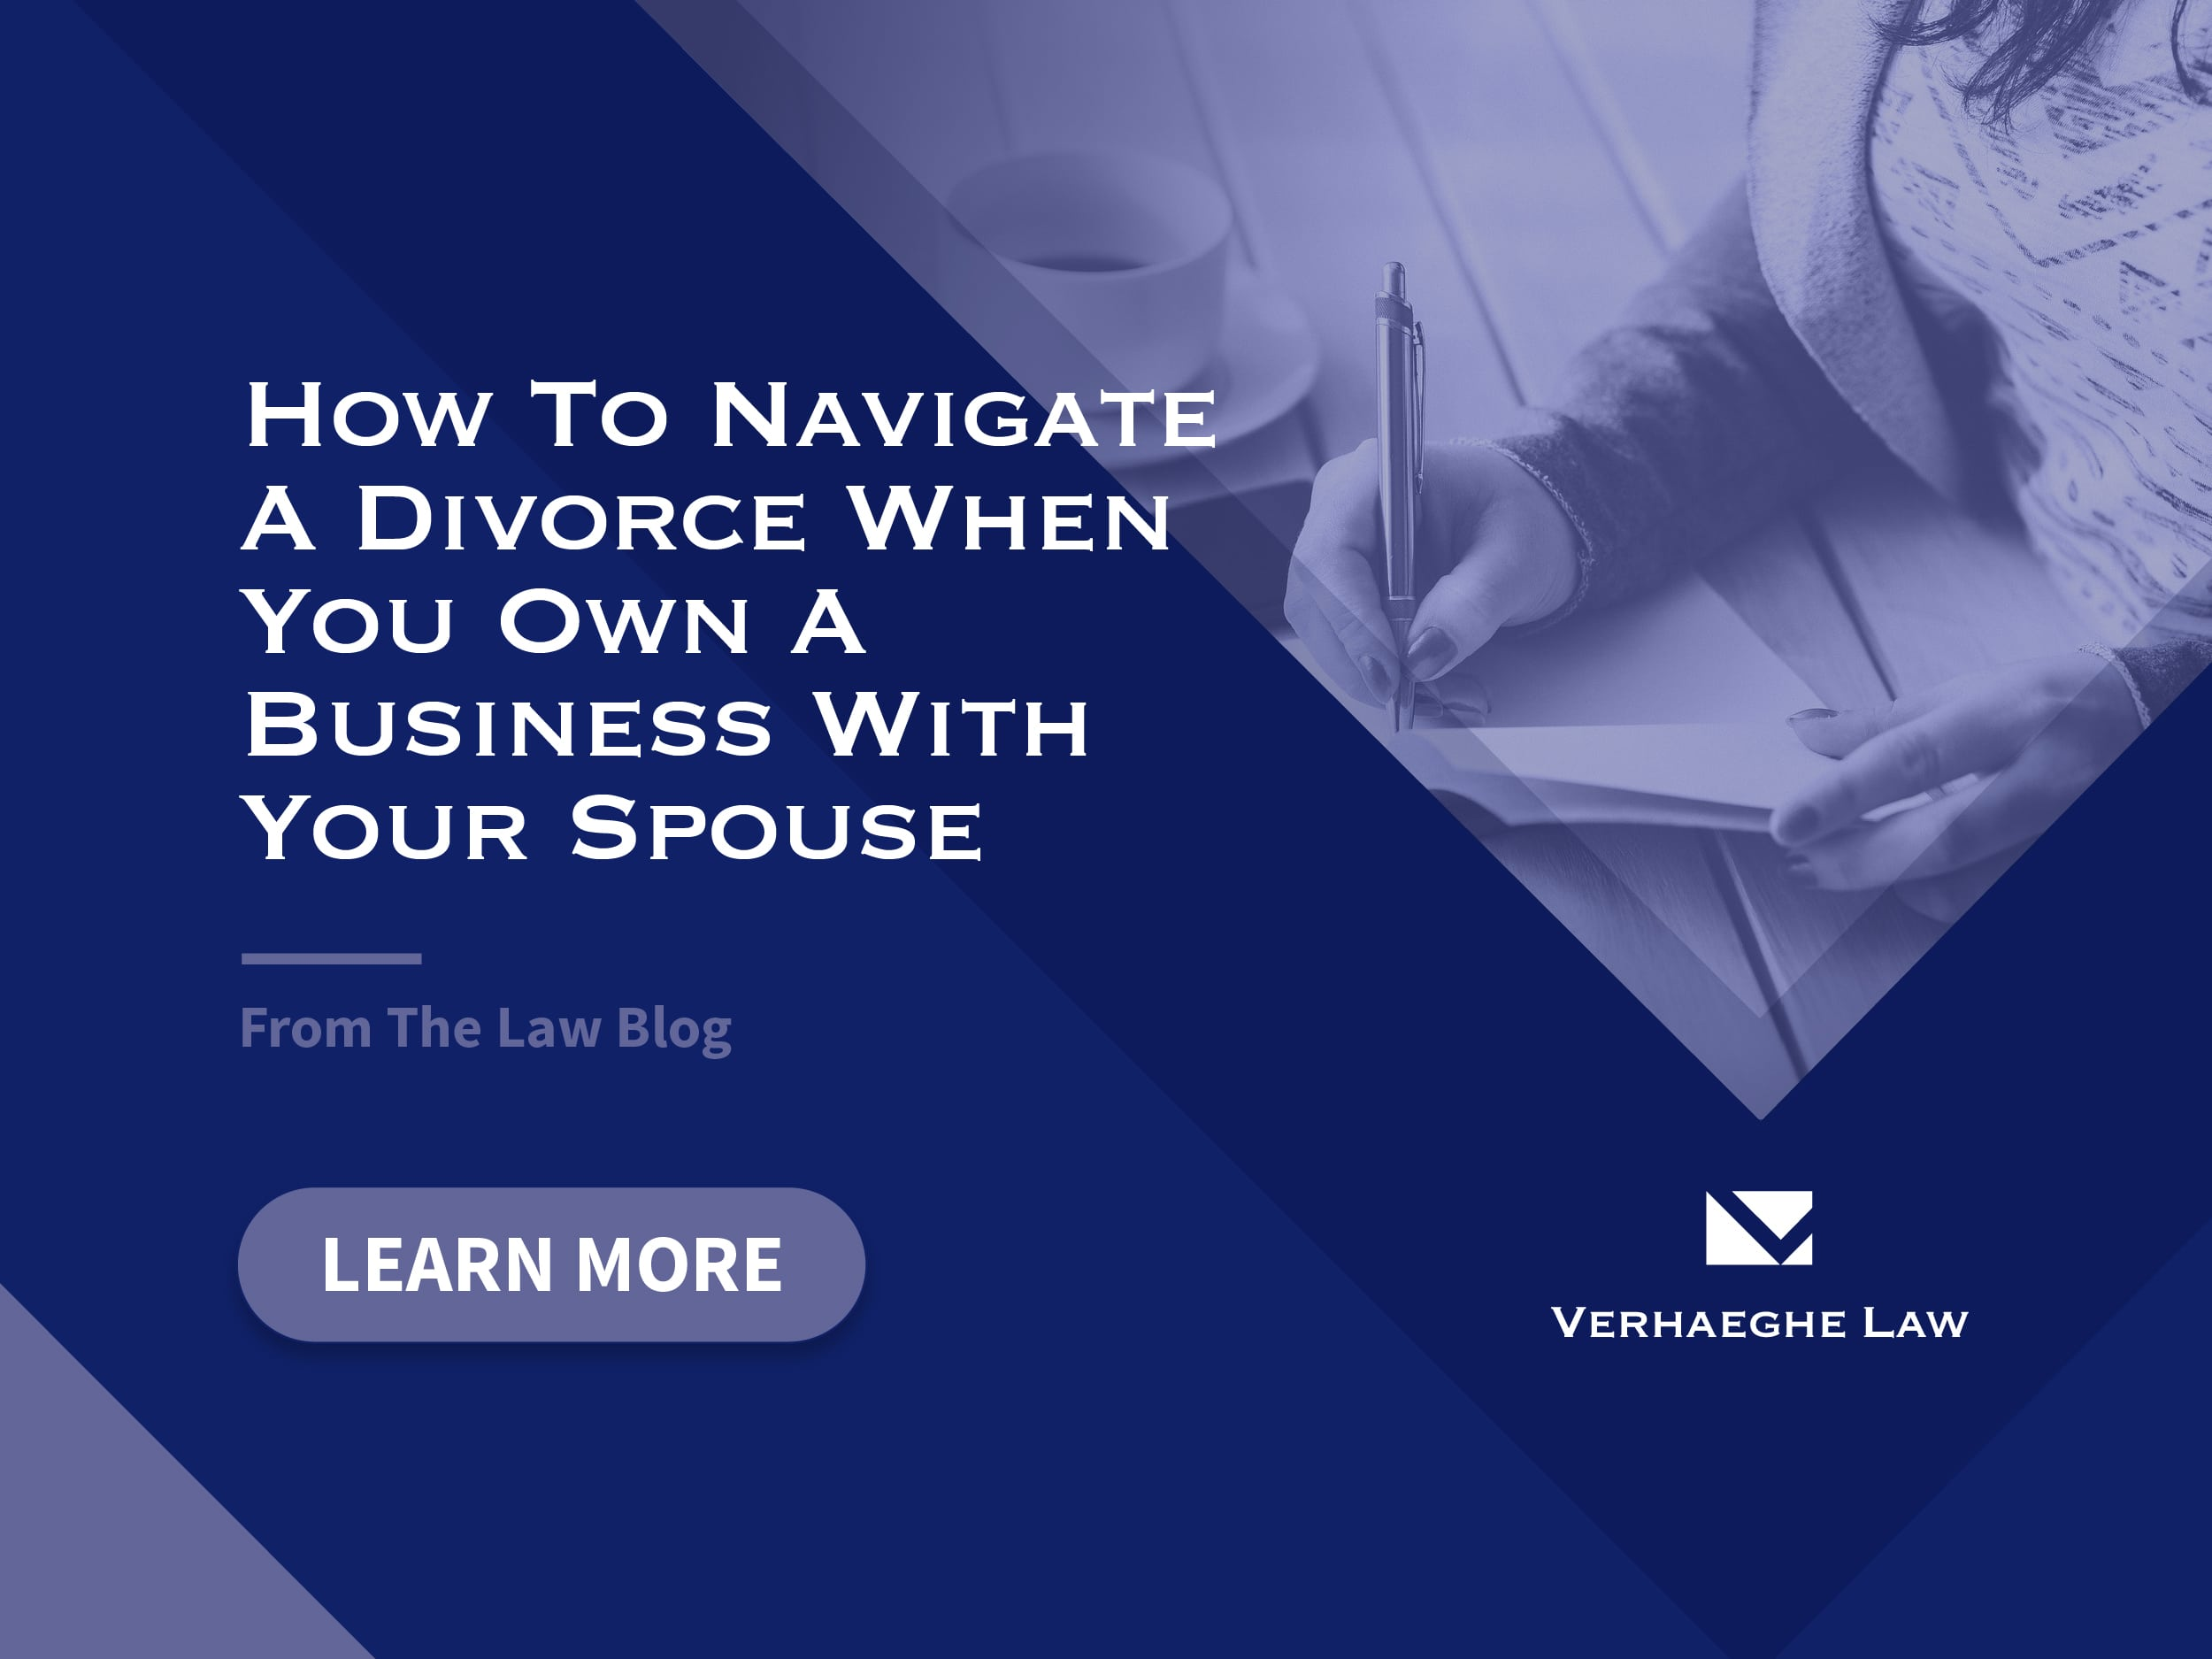 How to navigate a divorce when you own a business with your spouse